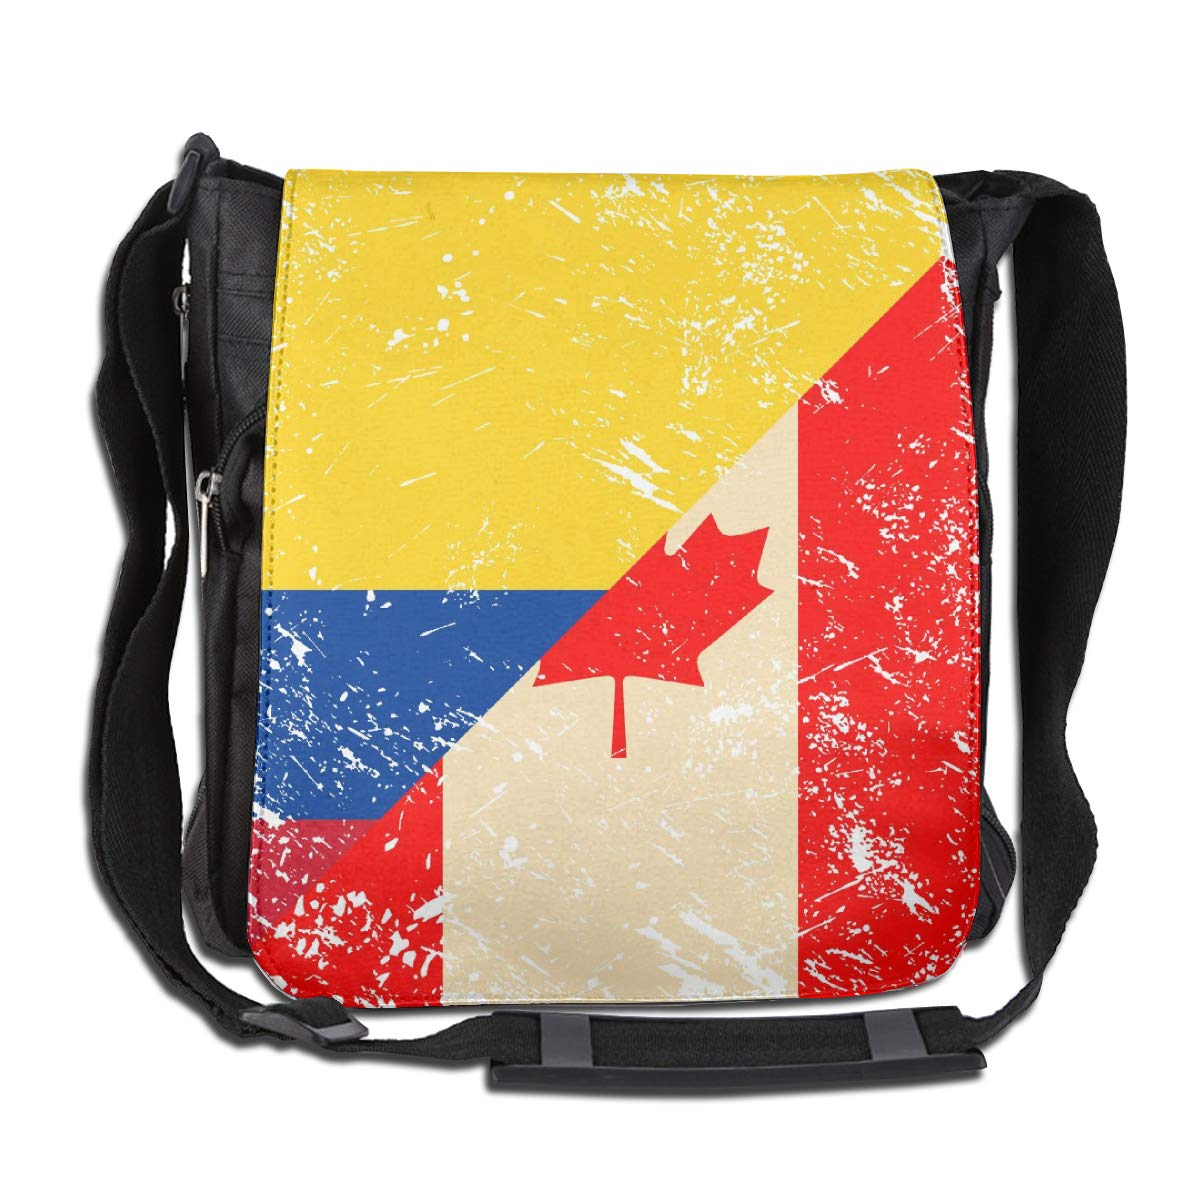 Unisex Classic Satchel Messenger Bags Canada And Columbia Retro Flag Crossbody Shoulder Bag Hiking Bags For School//Work//Trips